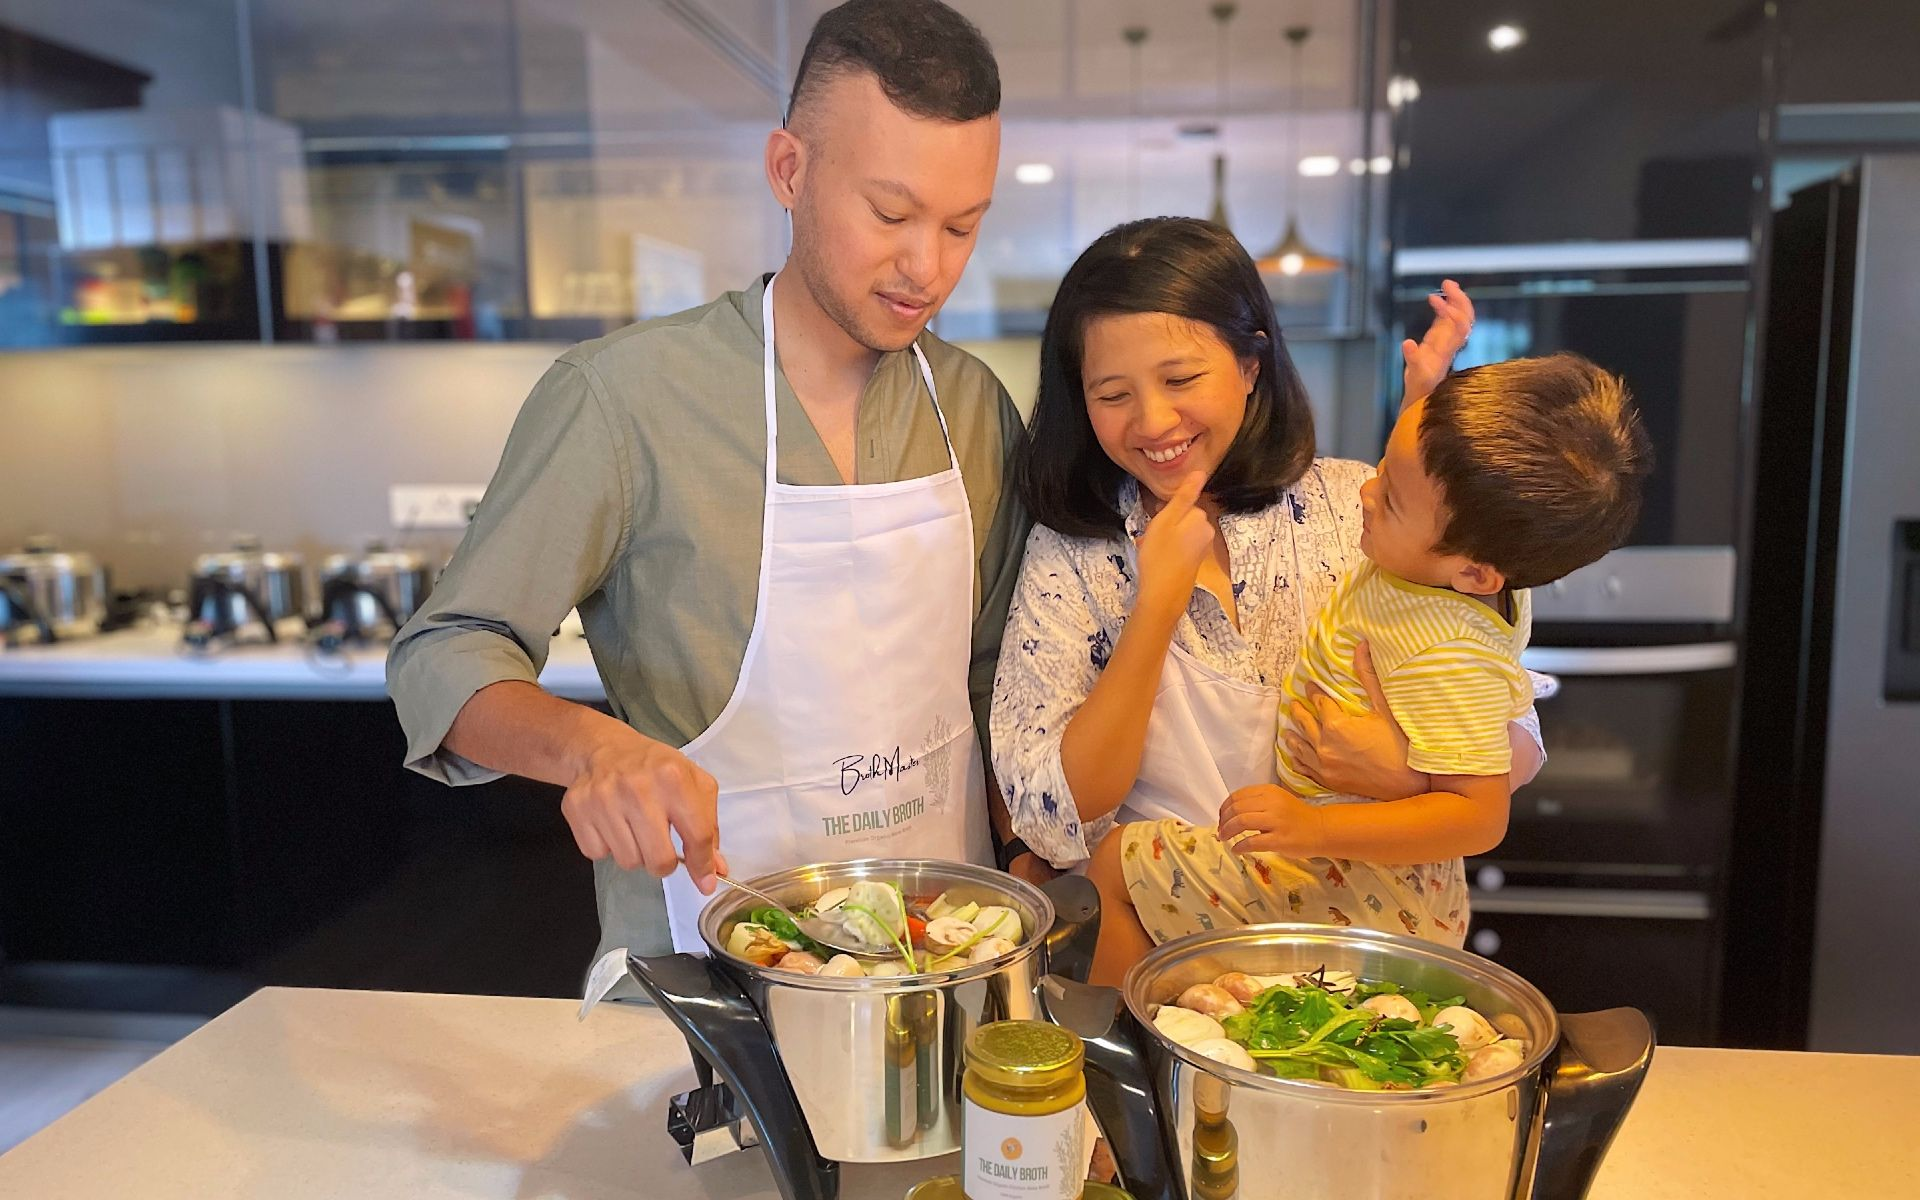 The Daily Broth Aims To Spread The Benefits Of Bone Broth Throughout Malaysia